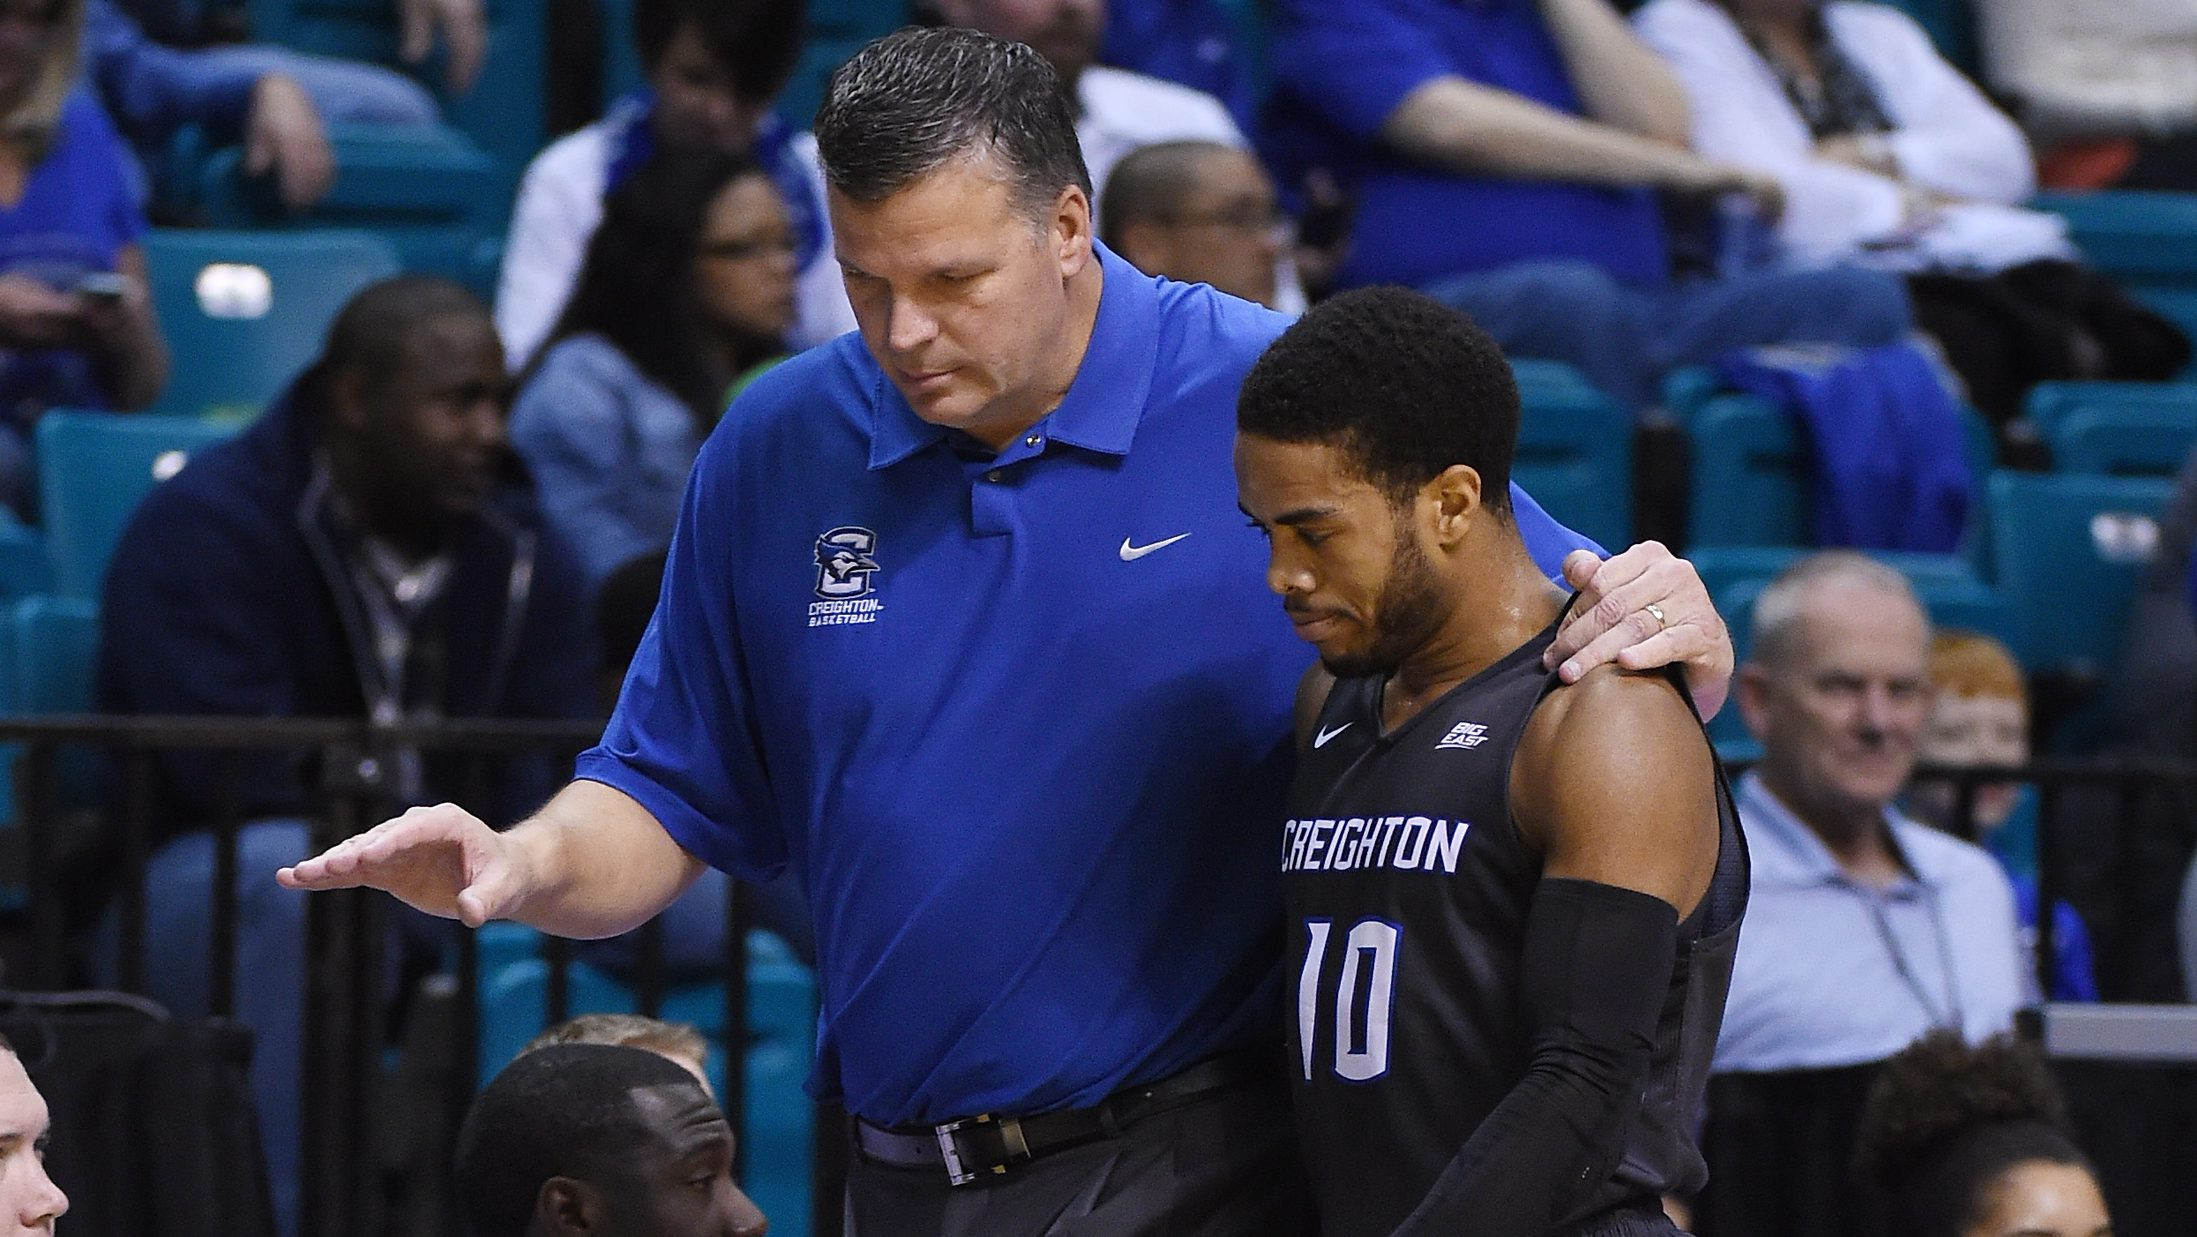 LAS VEGAS, NV - NOVEMBER 25:  Head coach Greg McDermott of the Creighton Bluejays talks with Maurice Watson Jr. #10 during the team's game against the Massachusetts Minutemen during the championship game of the Men Who Speak Up Main Event basketball tournament at MGM Grand Garden Arena on November 25, 2015 in Las Vegas, Nevada. Creighton won 97-76.  (Photo by Ethan Miller/Getty Images)